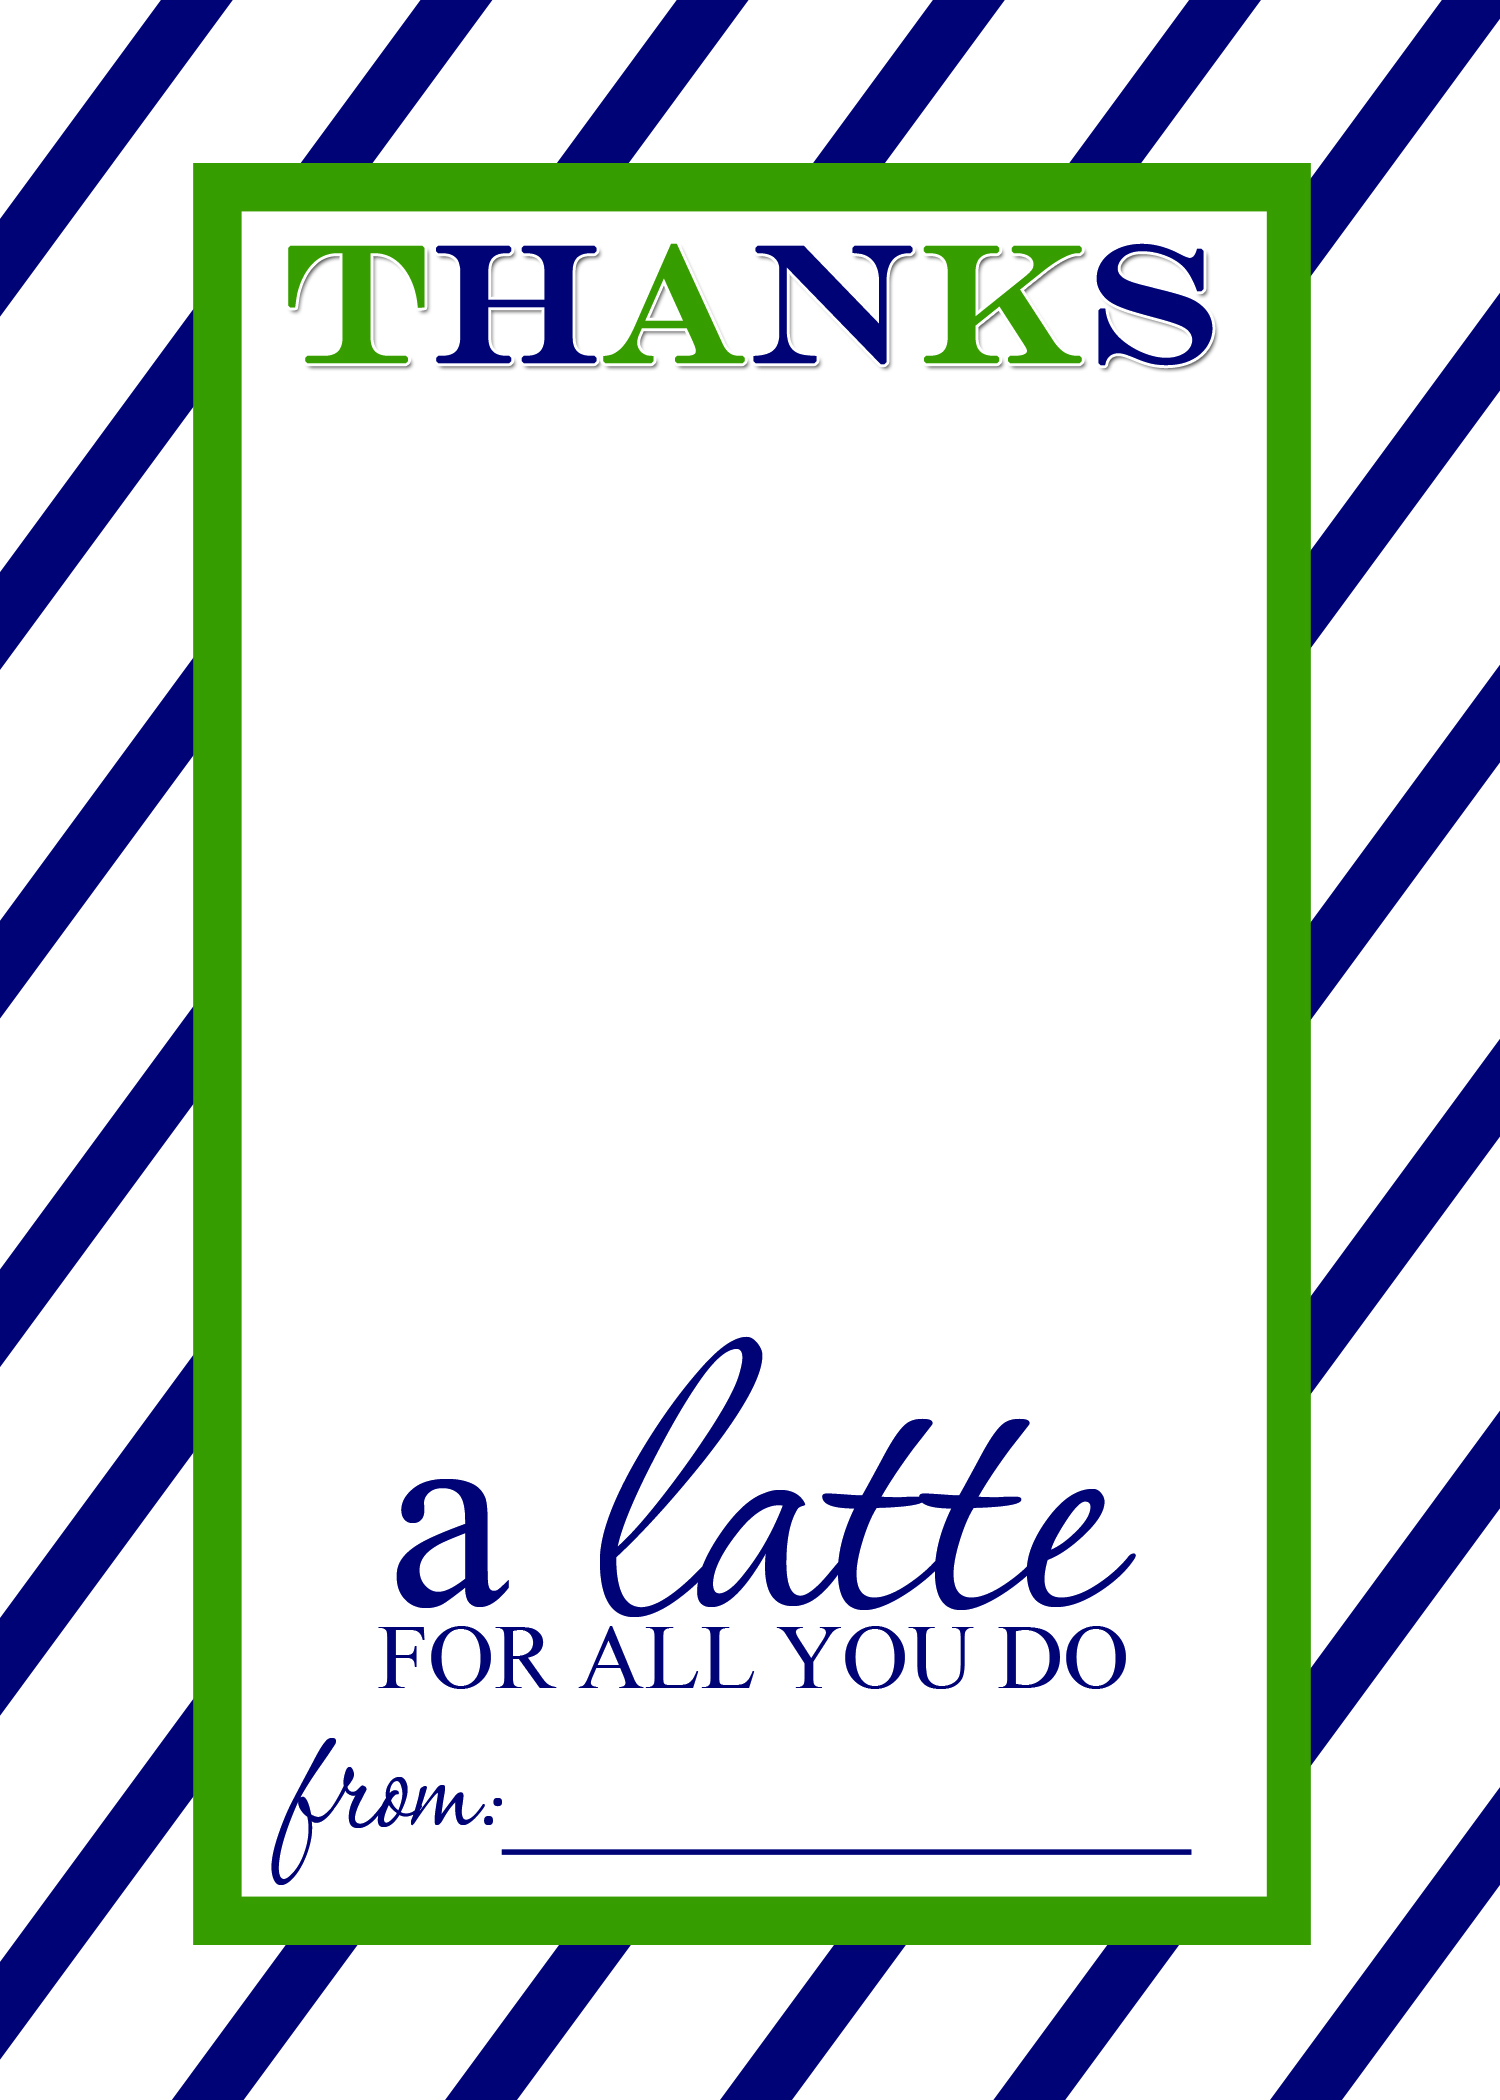 graphic about Thanks a Latte Printable titled Thats Place Residing